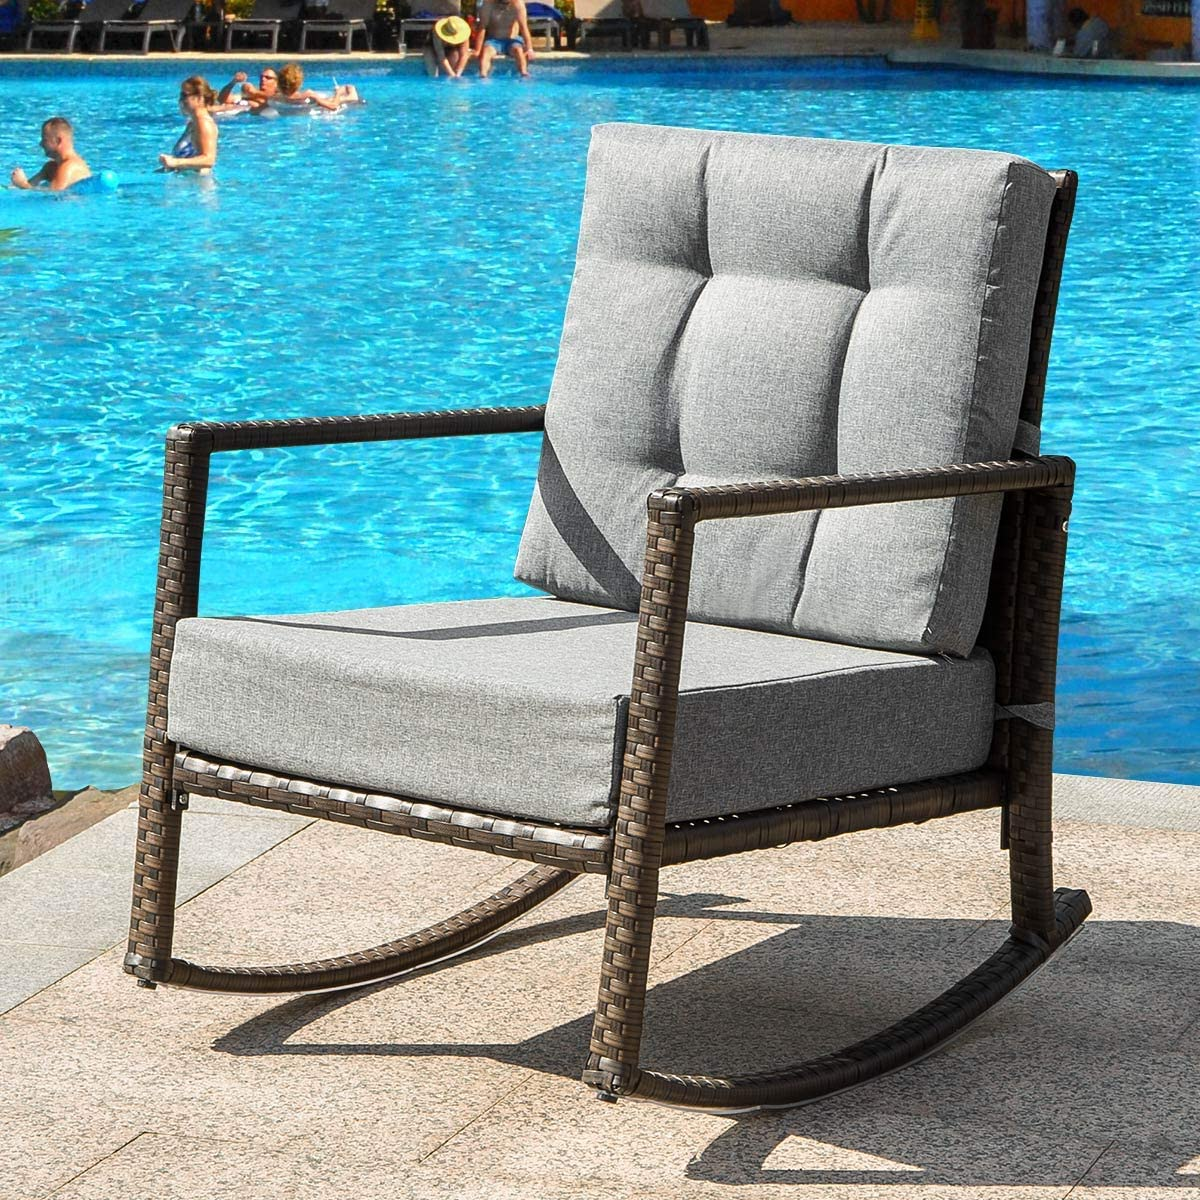 Outdoor Patio Rocking Chair Lounge Chair – Rocker Armchair Outdoor Patio Wicker Rocking Chair